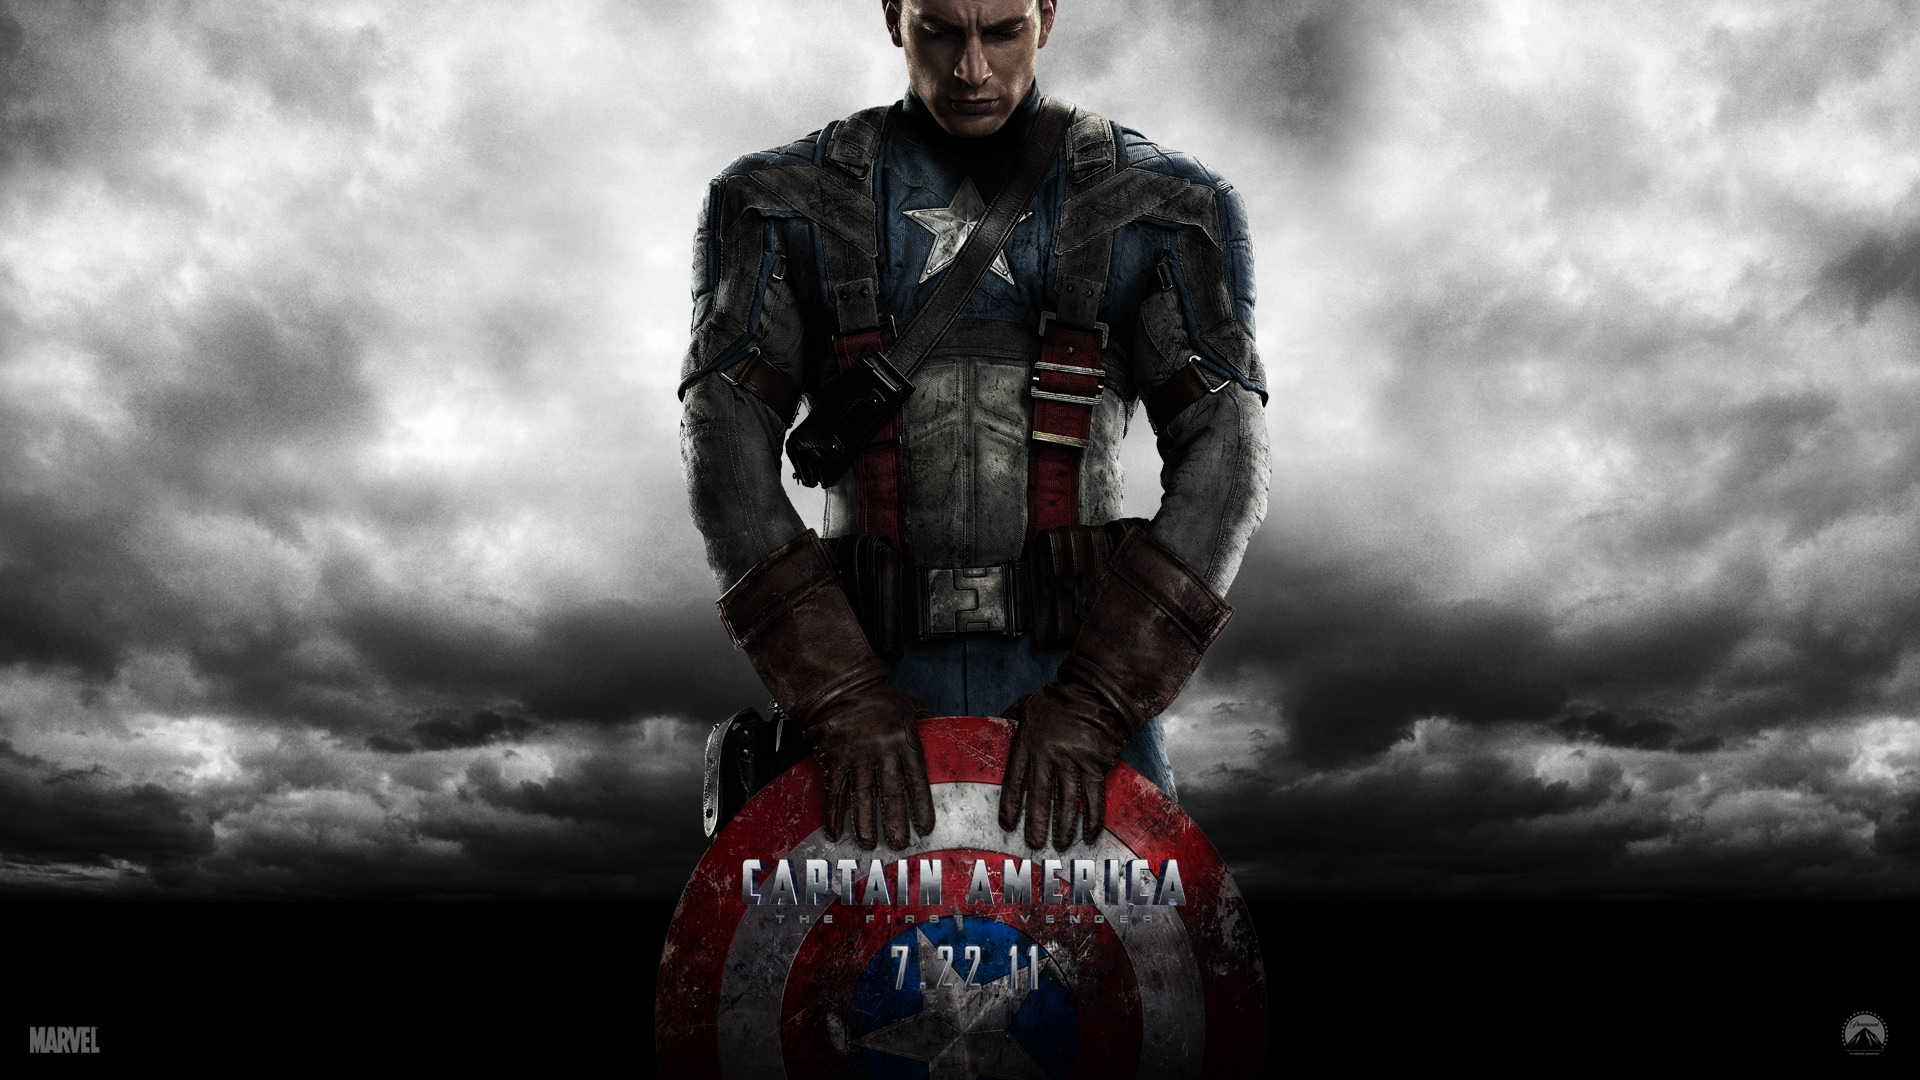 Captain America Wallpaper For Mac